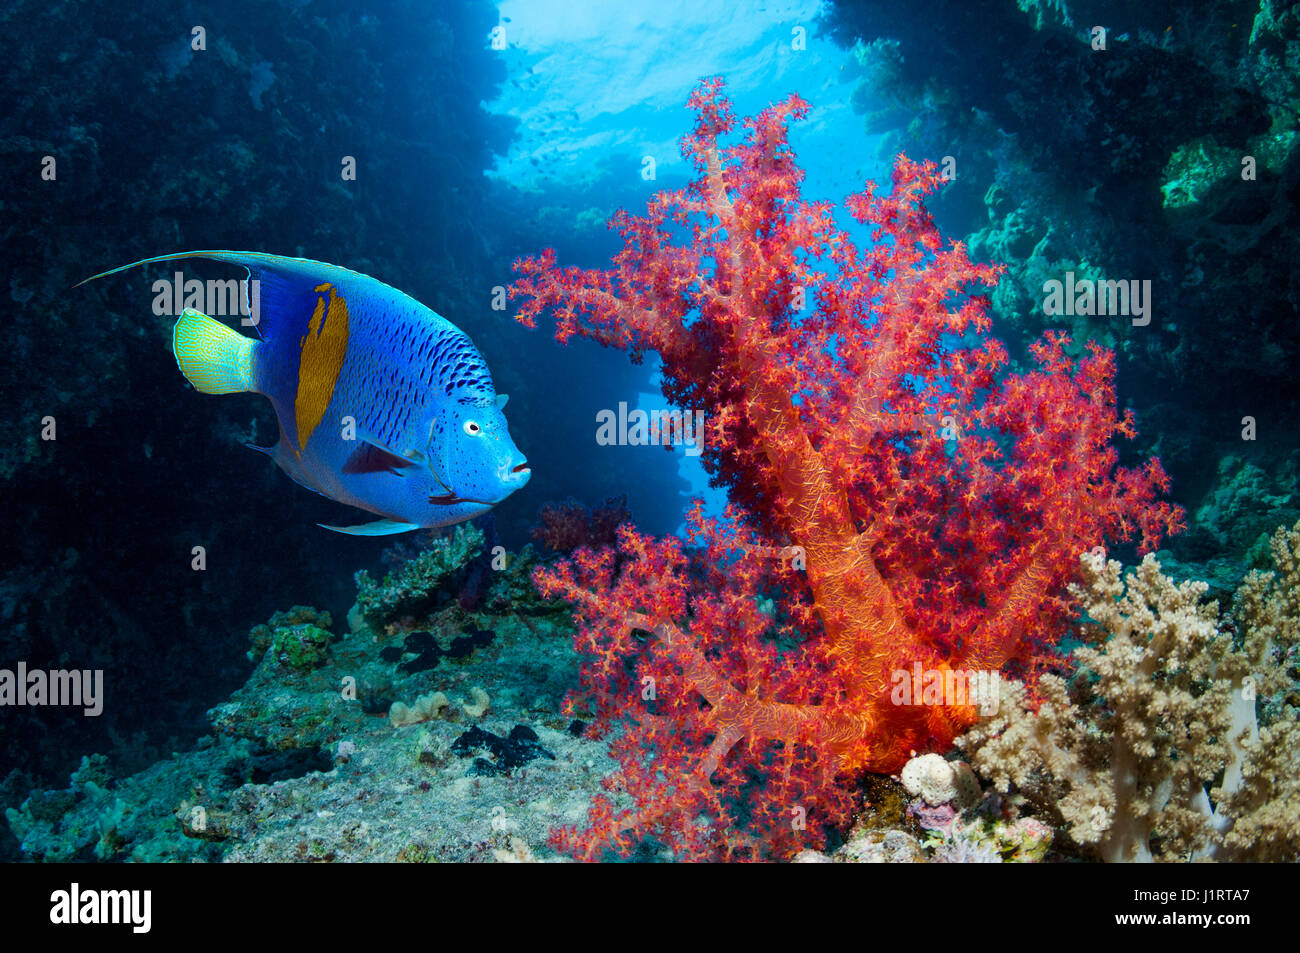 Coral reef scenery with a Yellowbar angelfish [Pomacanthus maculosus] swimming past soft corals.  Egypt, Red Sea. - Stock Image